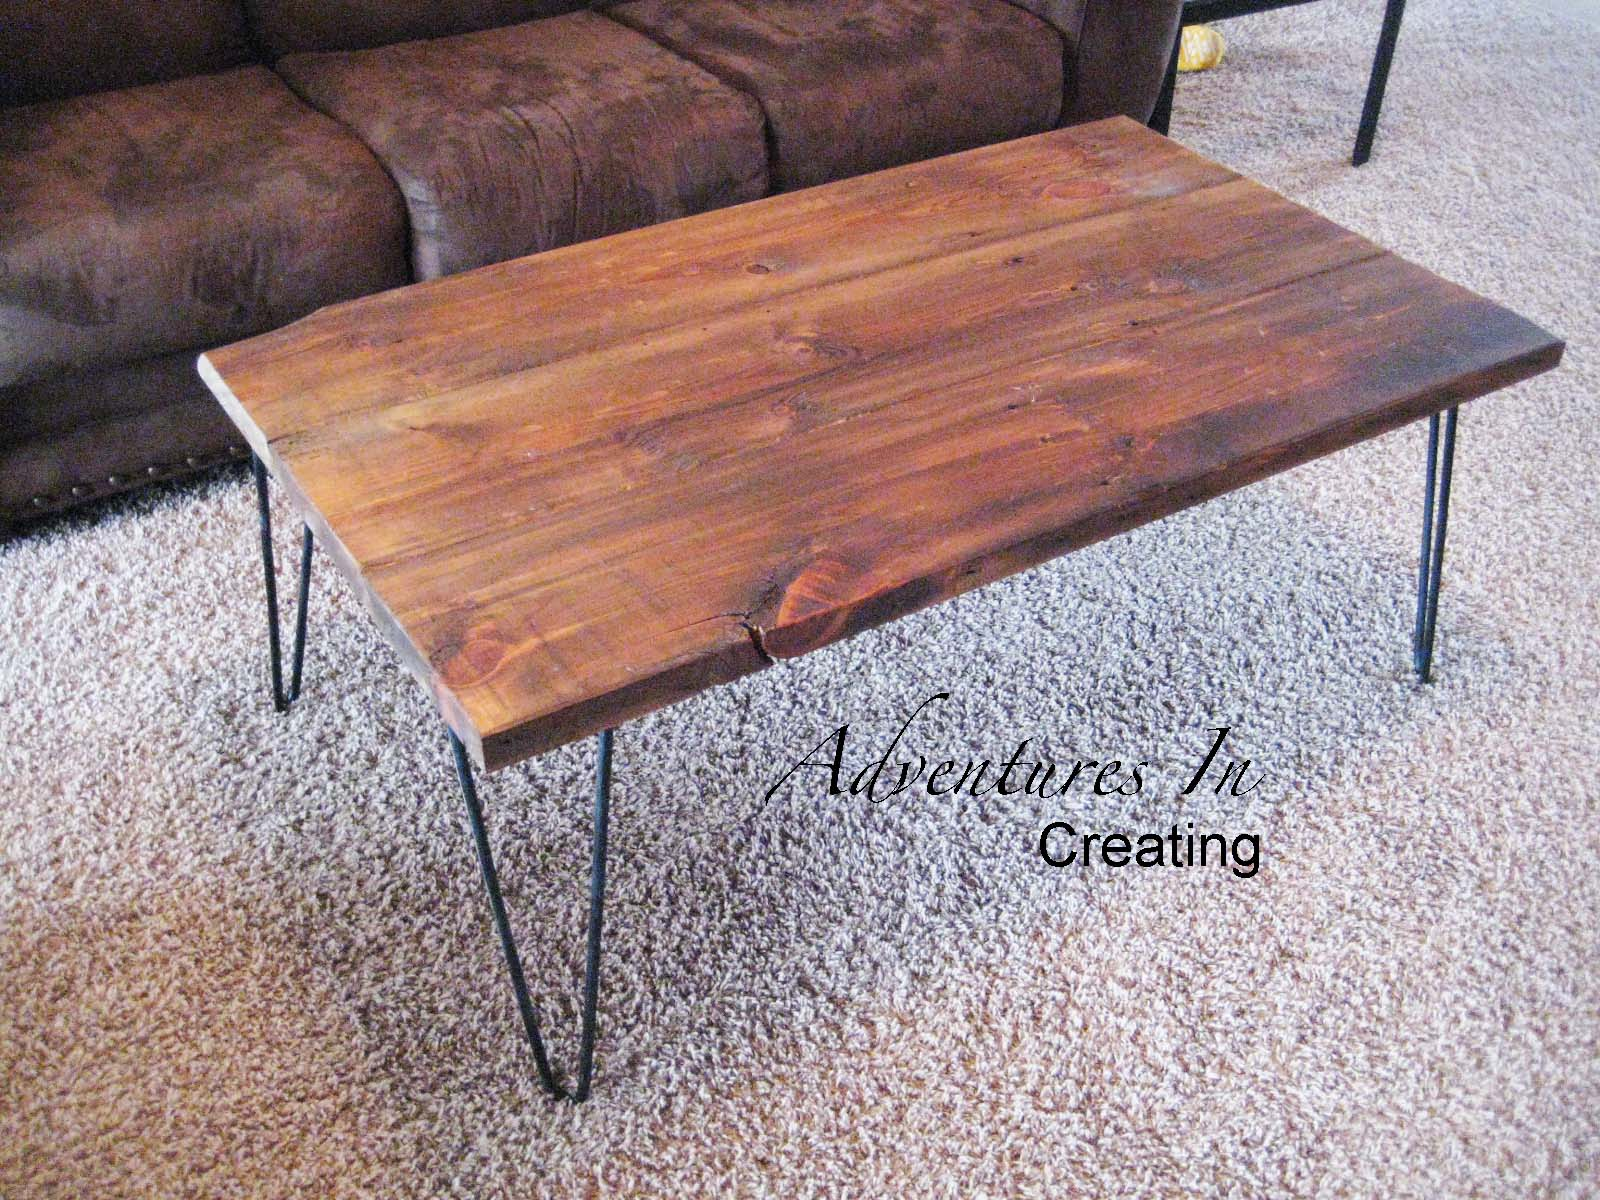 Remodelaholic build a modern coffee table and matching end tables wooden coffee table with hairpin legs adventures in creating via remodelaholic geotapseo Gallery